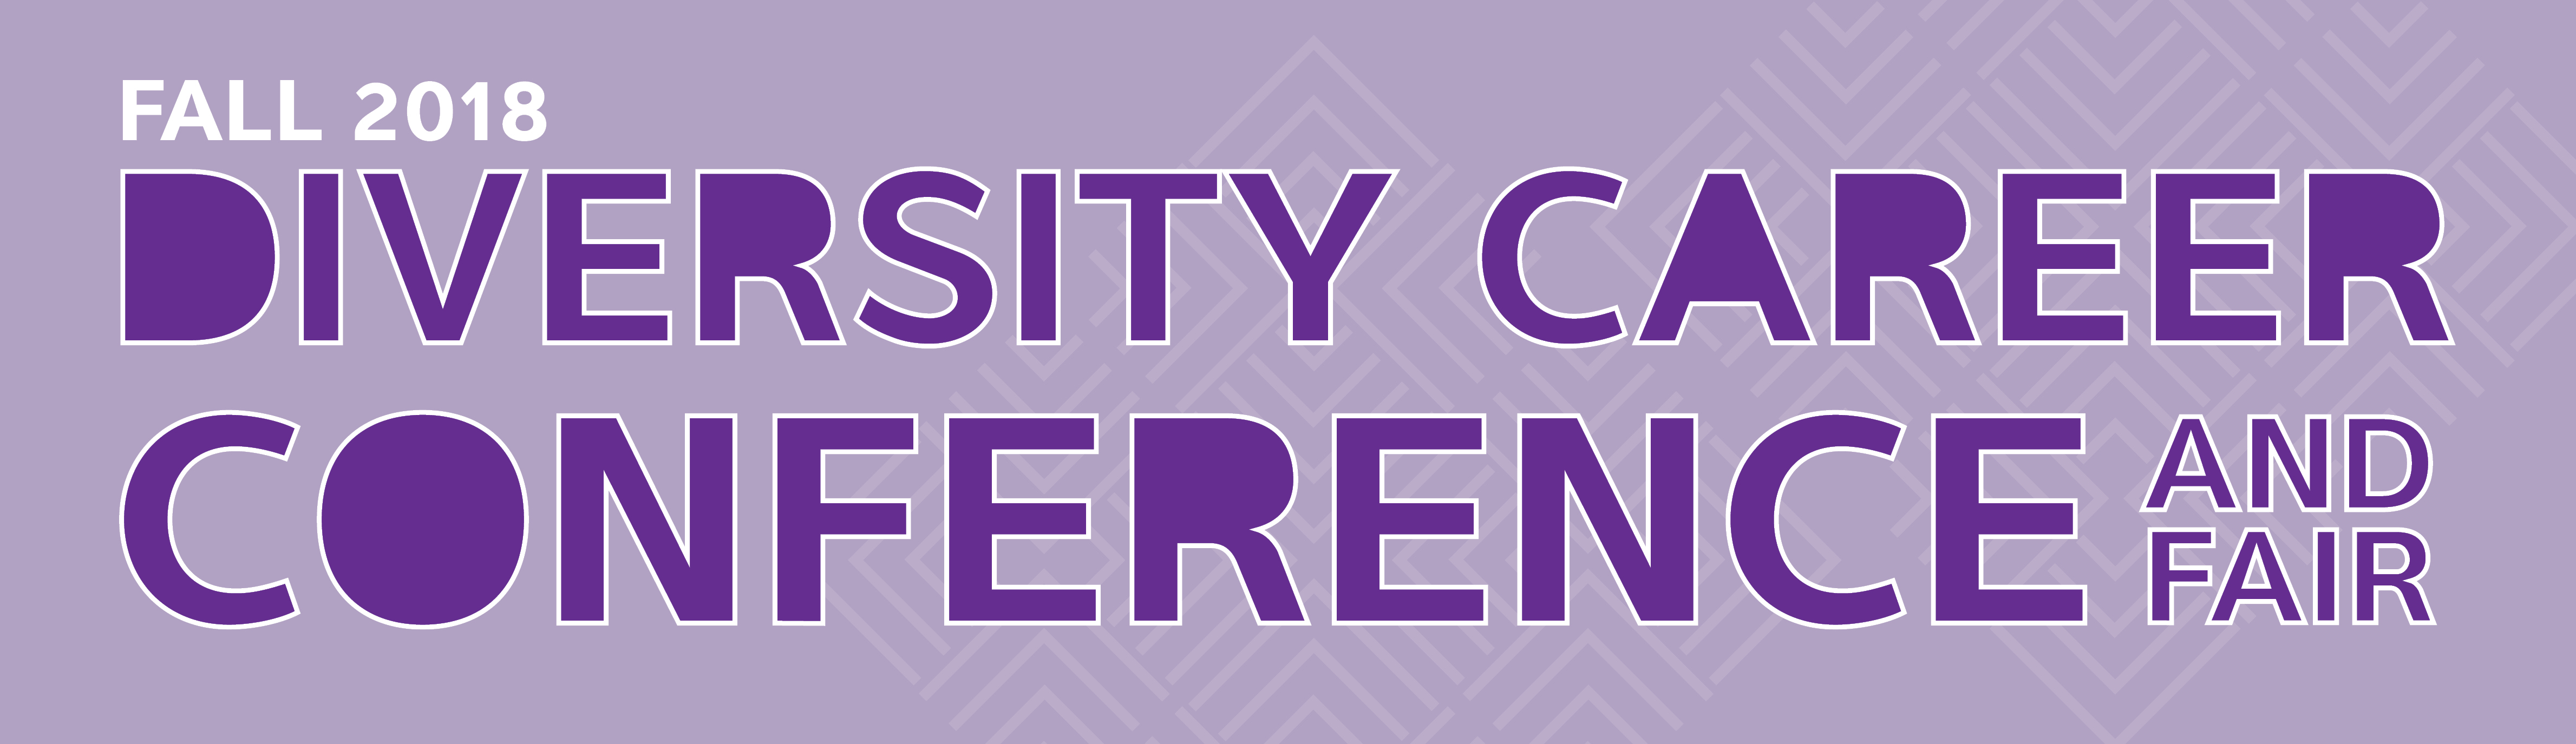 Diversity-Career-Conference-Web-Banner-Fall-2018